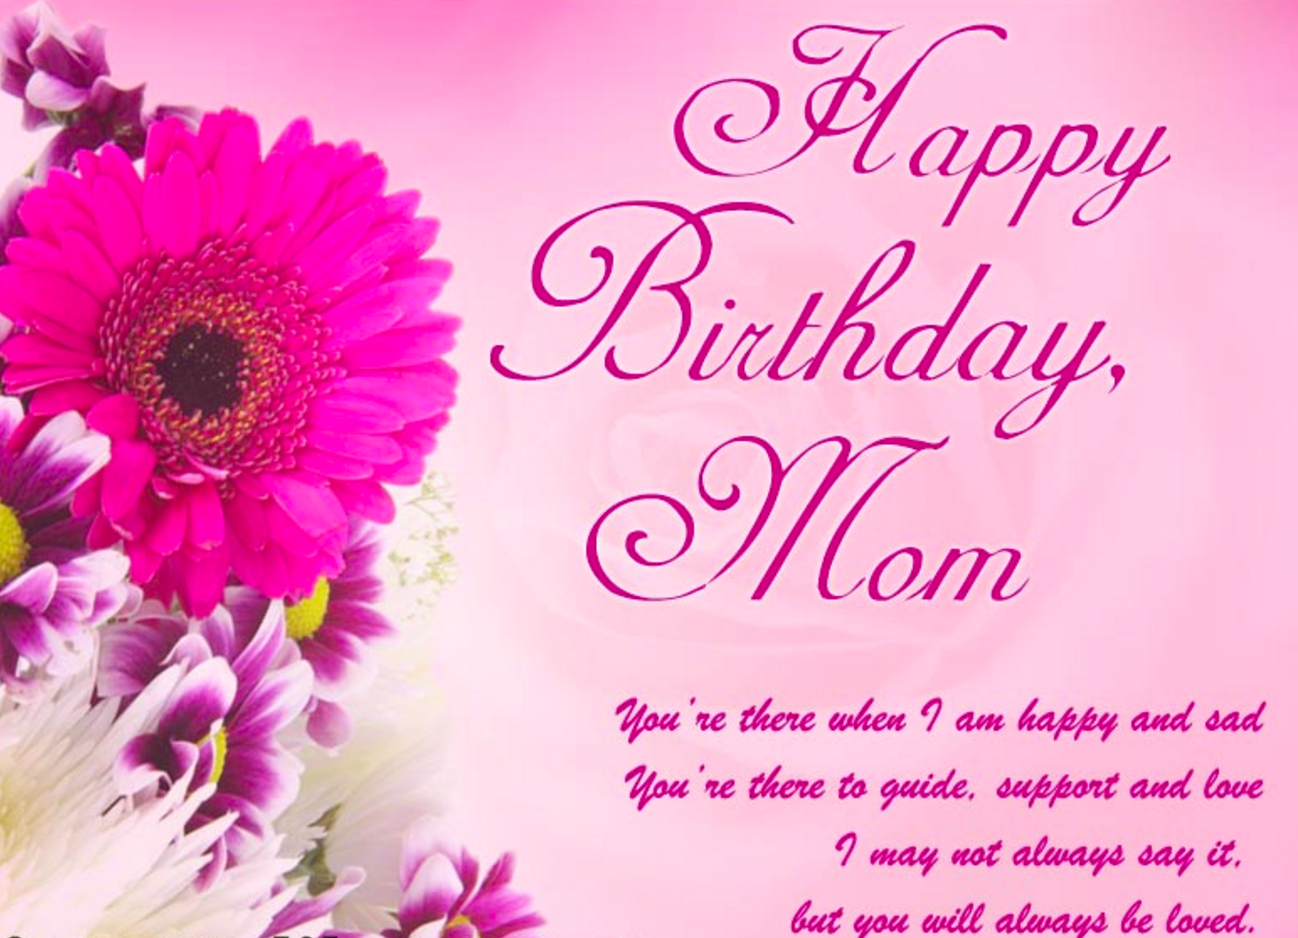 10 Heartfelt Birthday Cards With Quotes To Send Your Lovely Mom